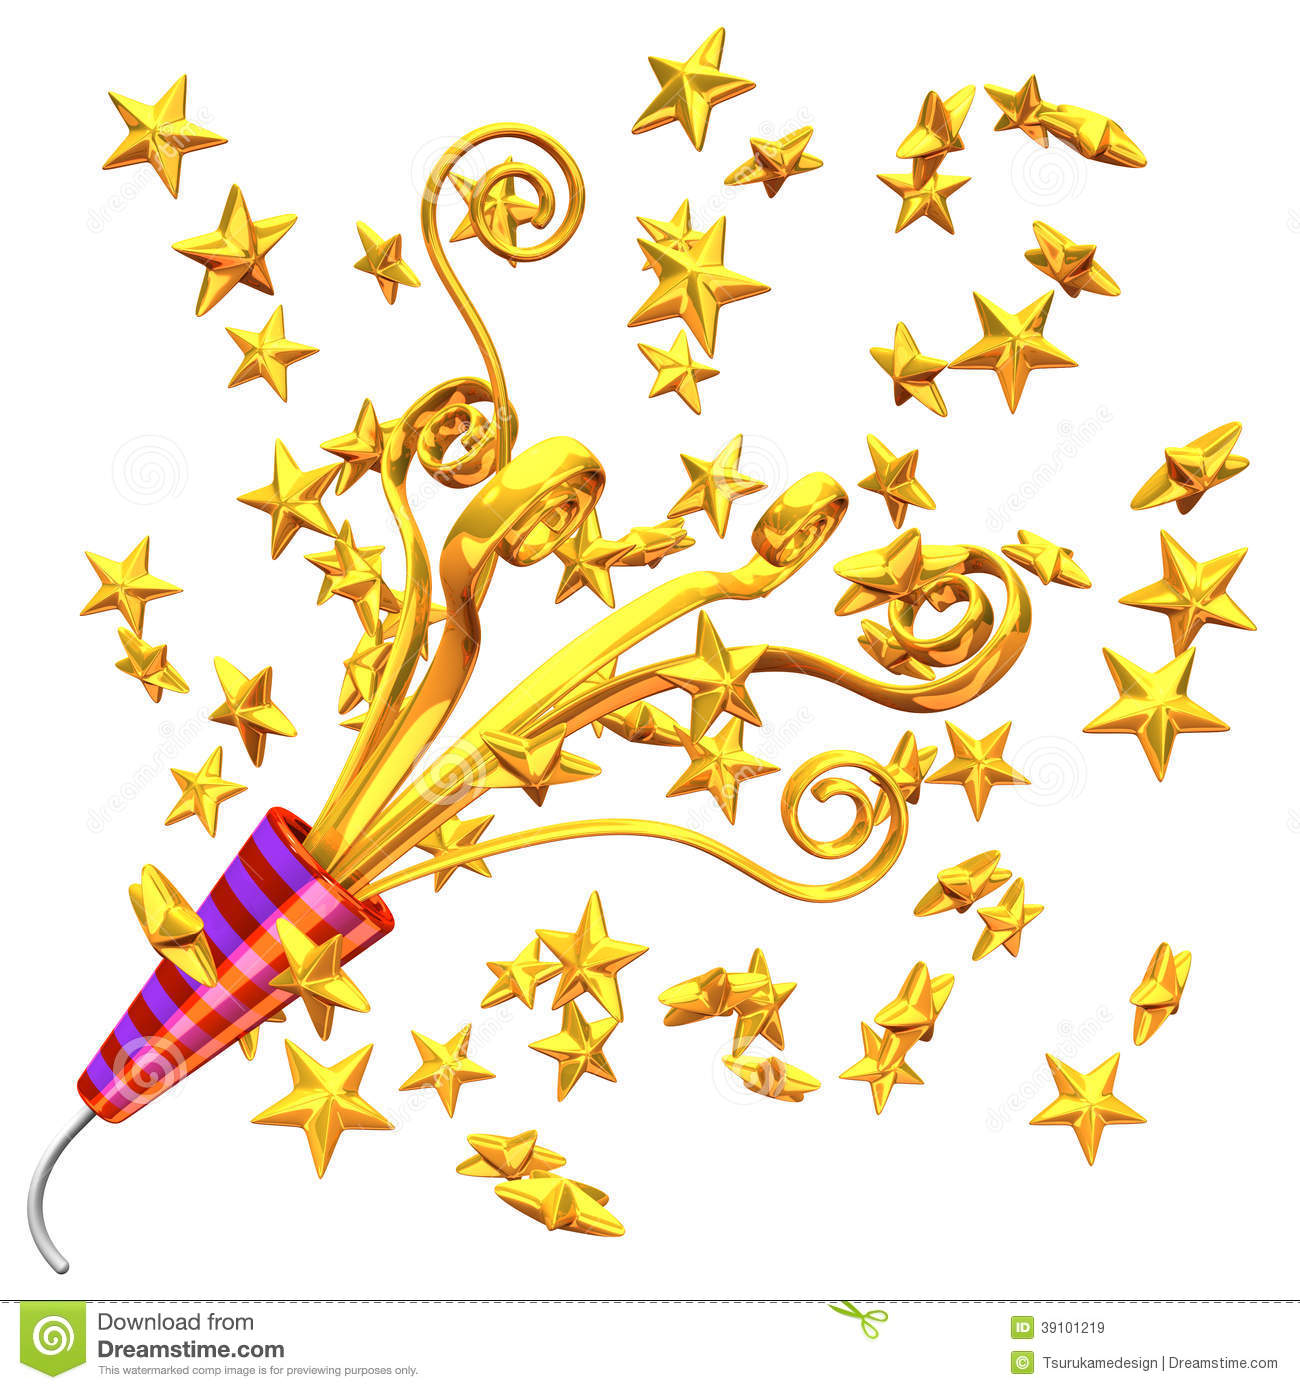 Golden party popper and some stars 3d render illustration isolated on